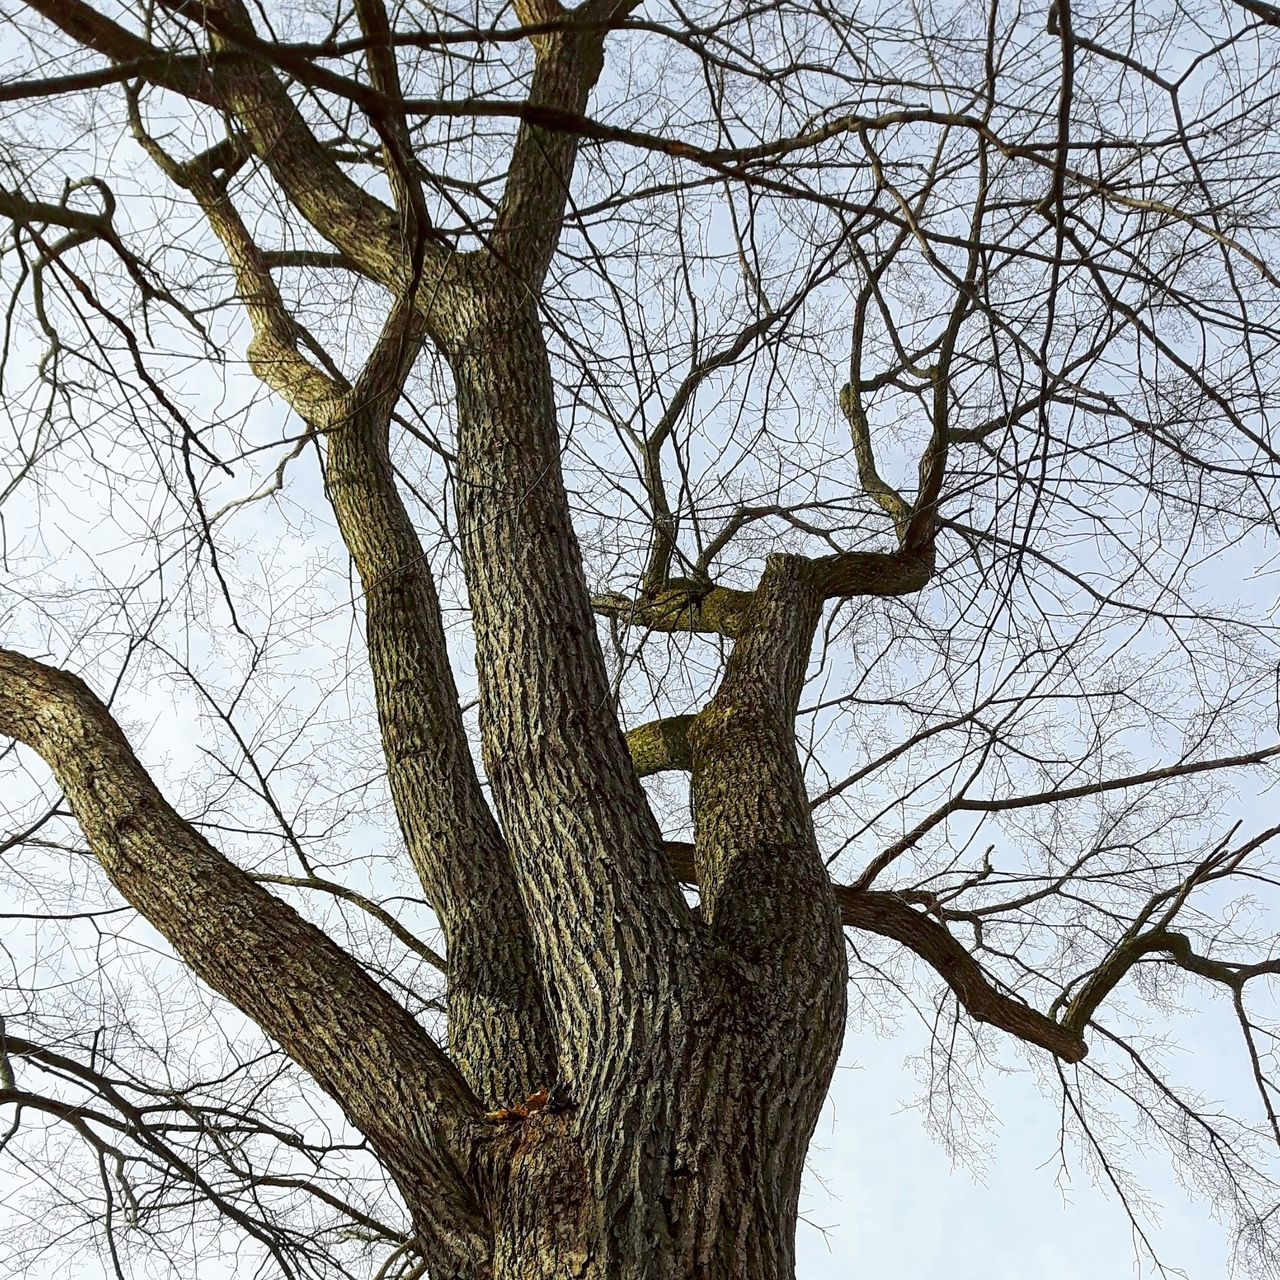 Tree Nature Low Angle View Outdoors ELM Orme Tree_collection  Tree TreePorn Treelovers Winter Hiver